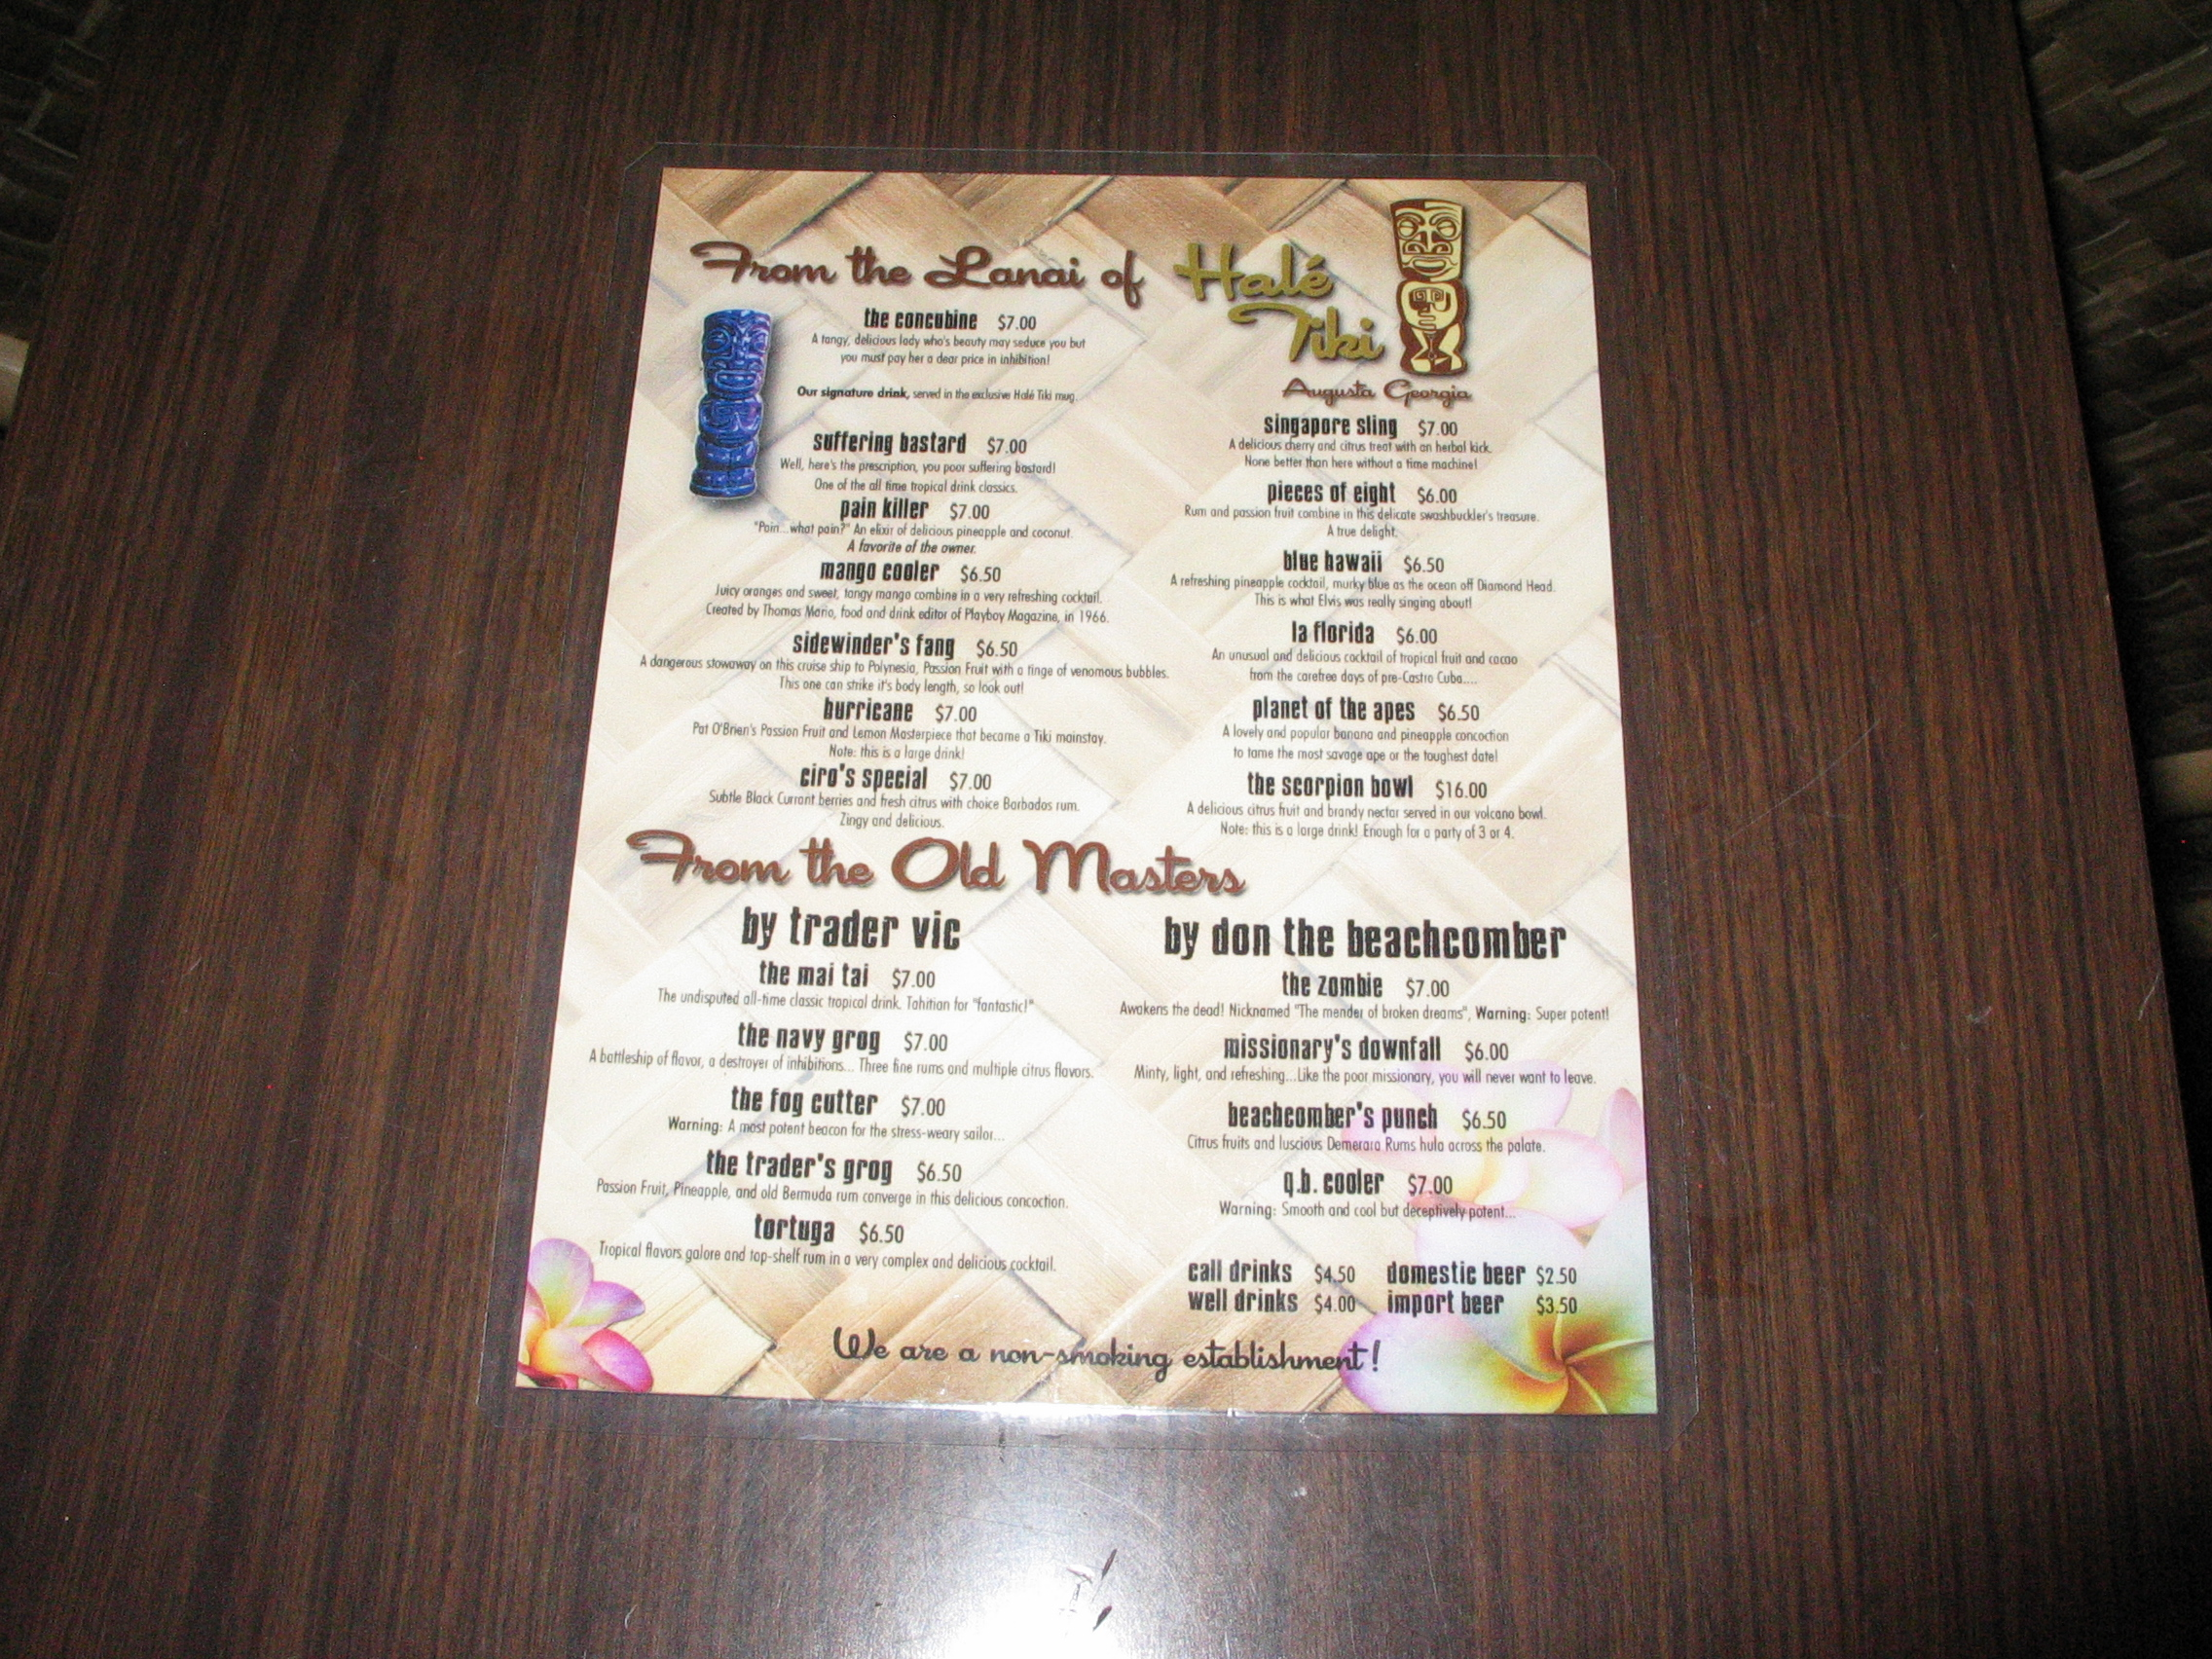 A picture of the menu.